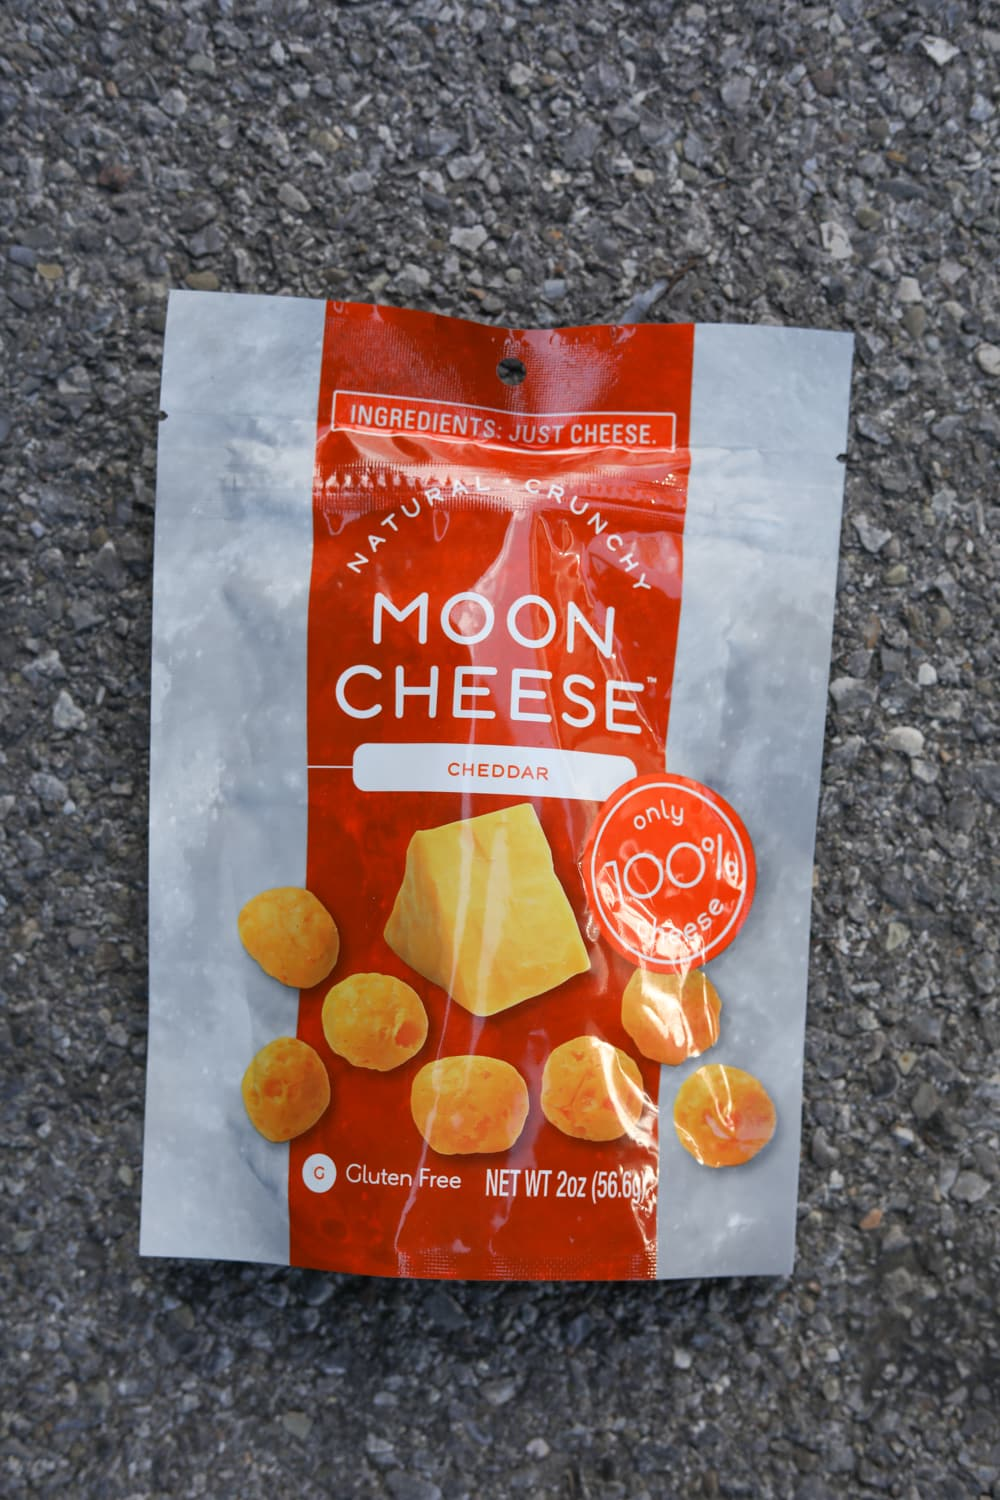 A bag of moon cheese.